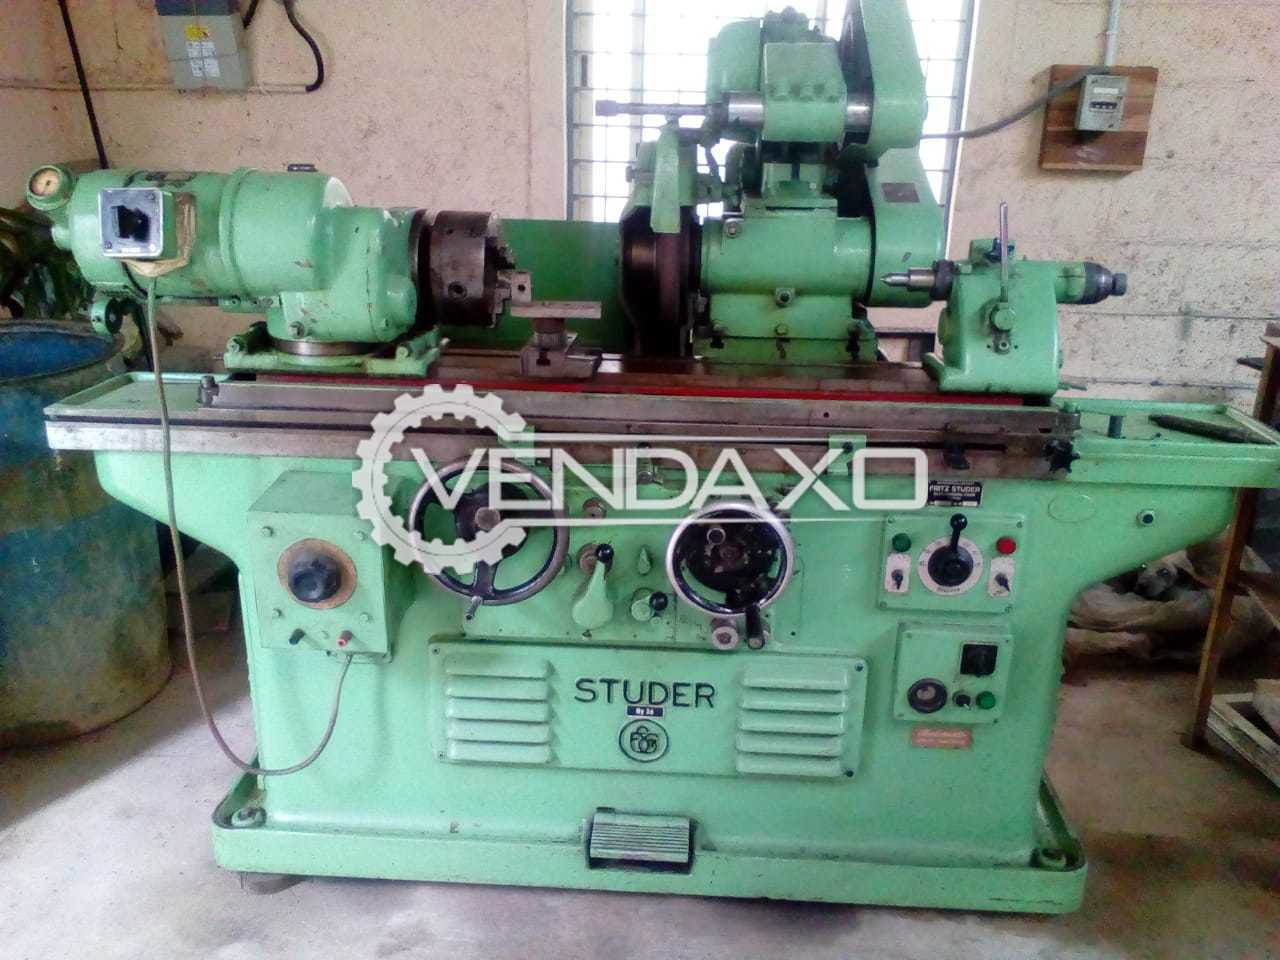 Fritz Studer Cylindrical Grinding Machine - 600 x 300 mm